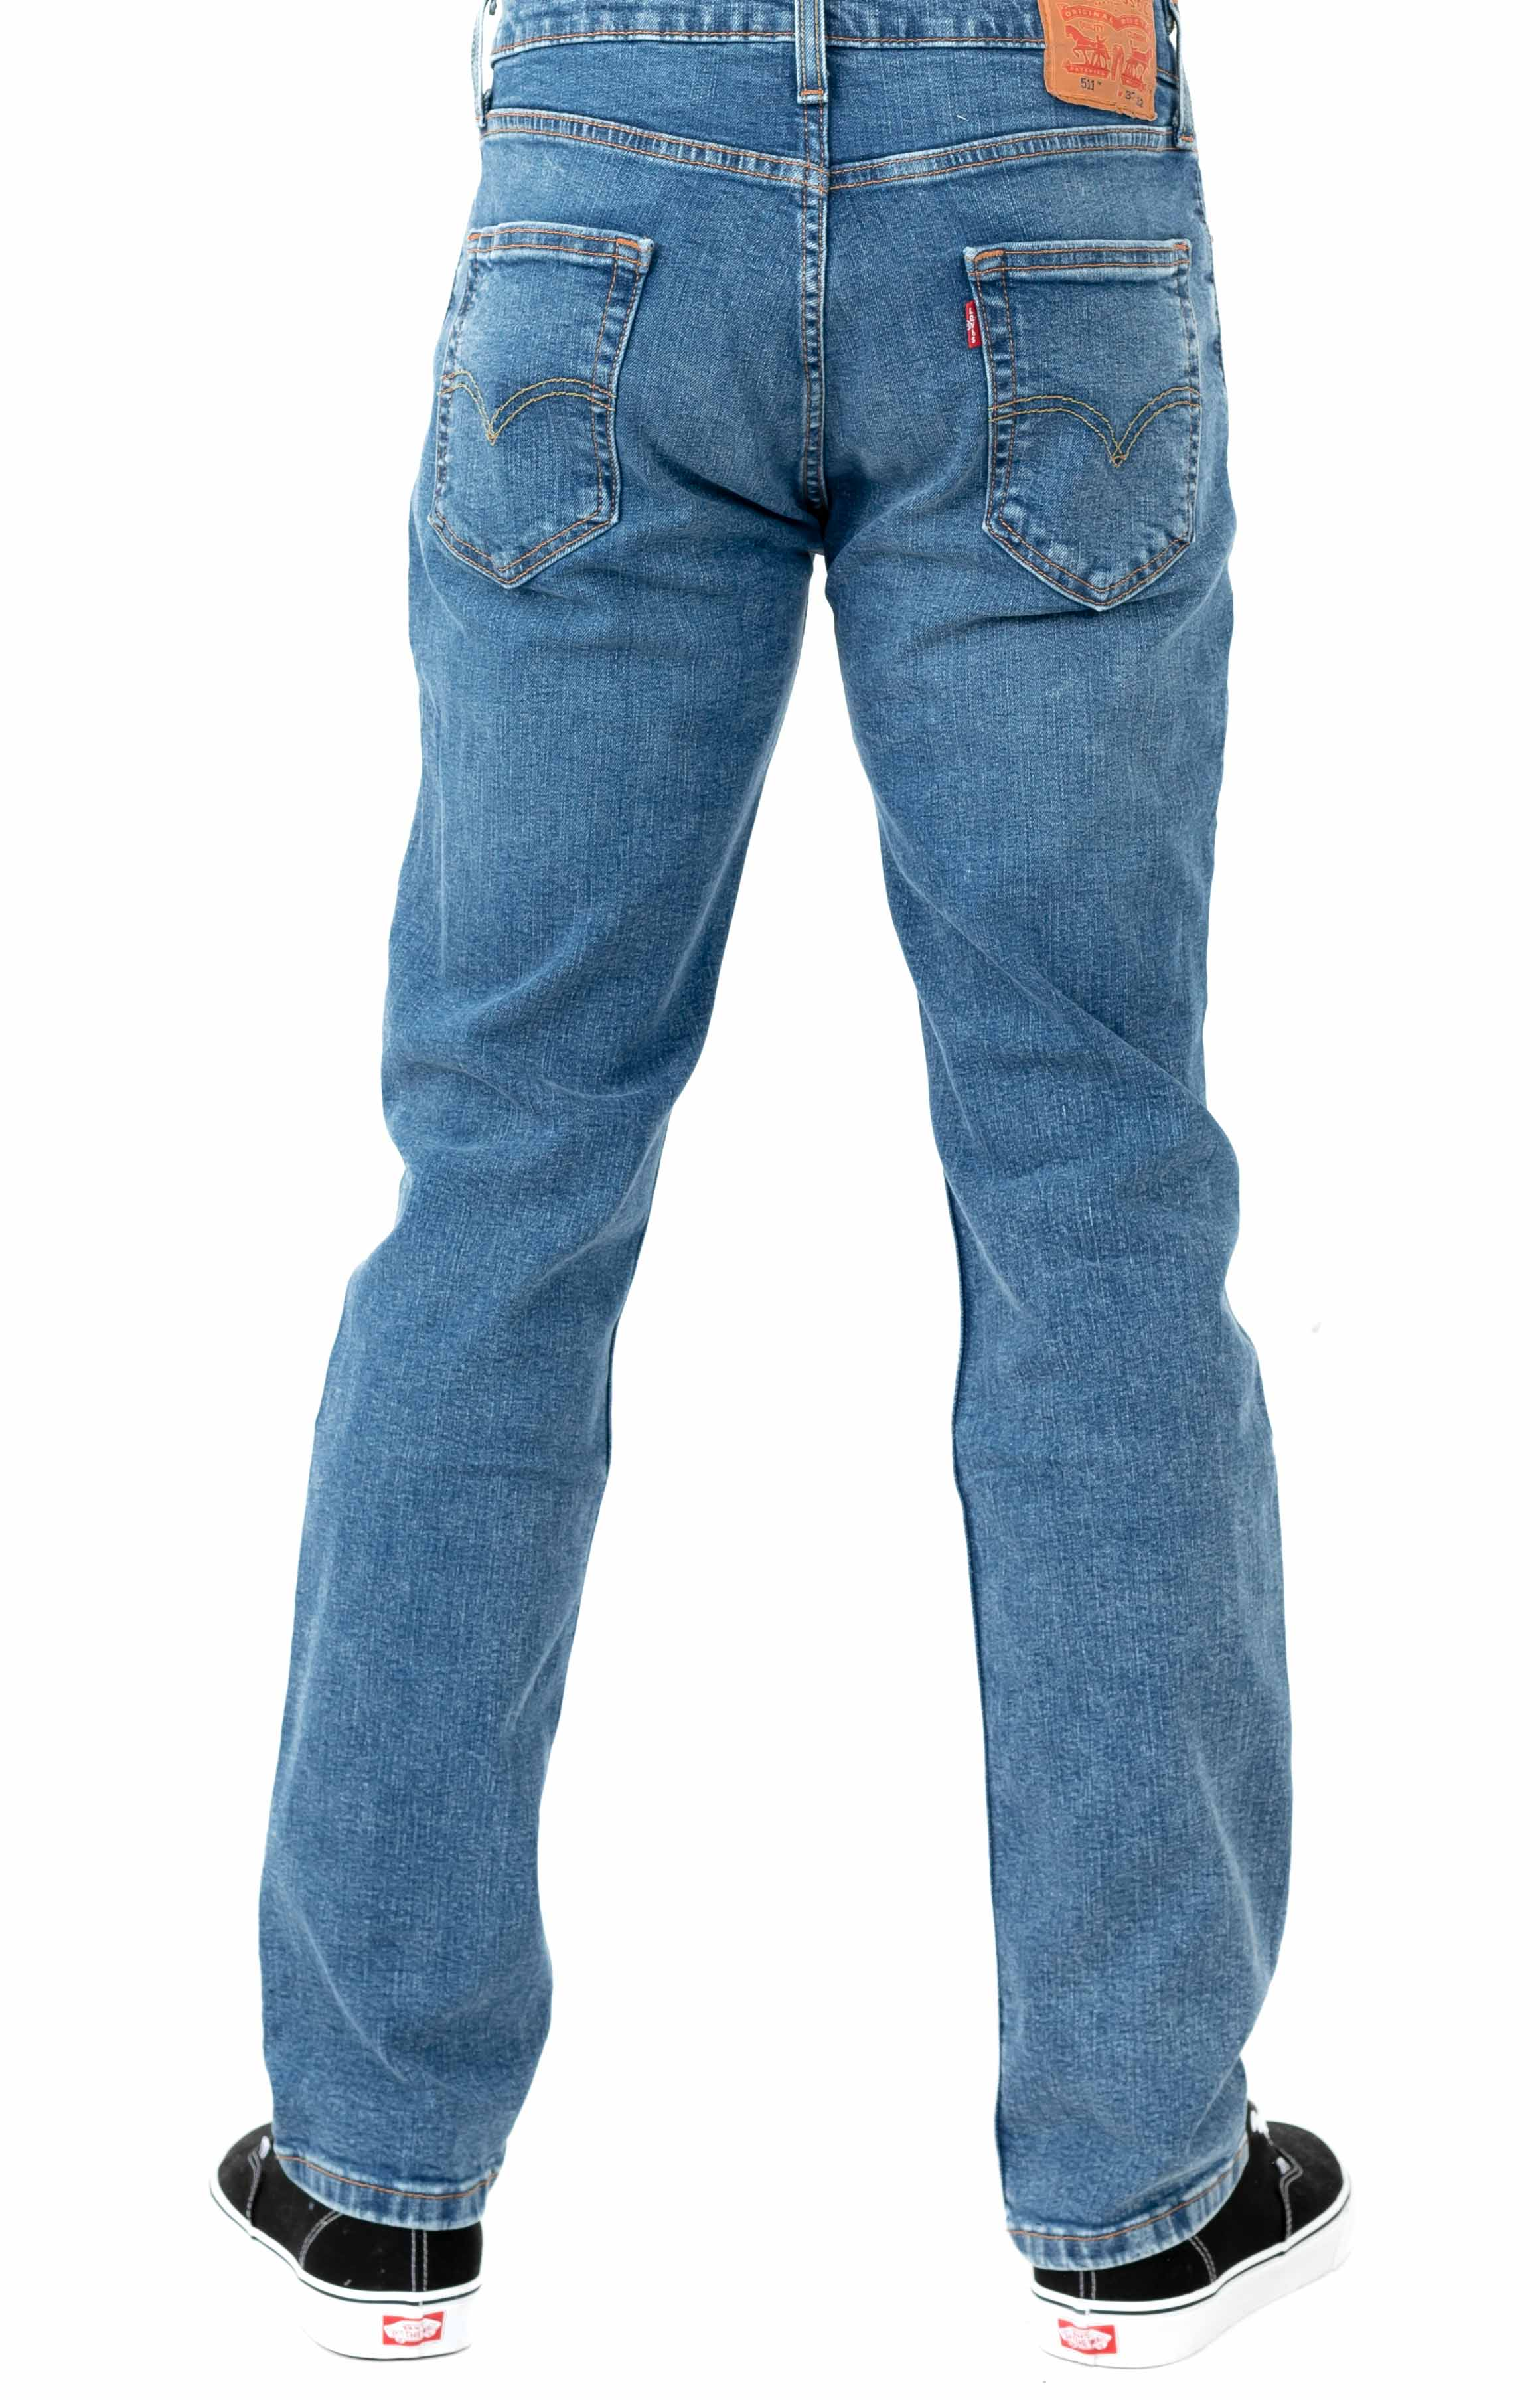 511 Slim Fit Jeans - The Banks  3